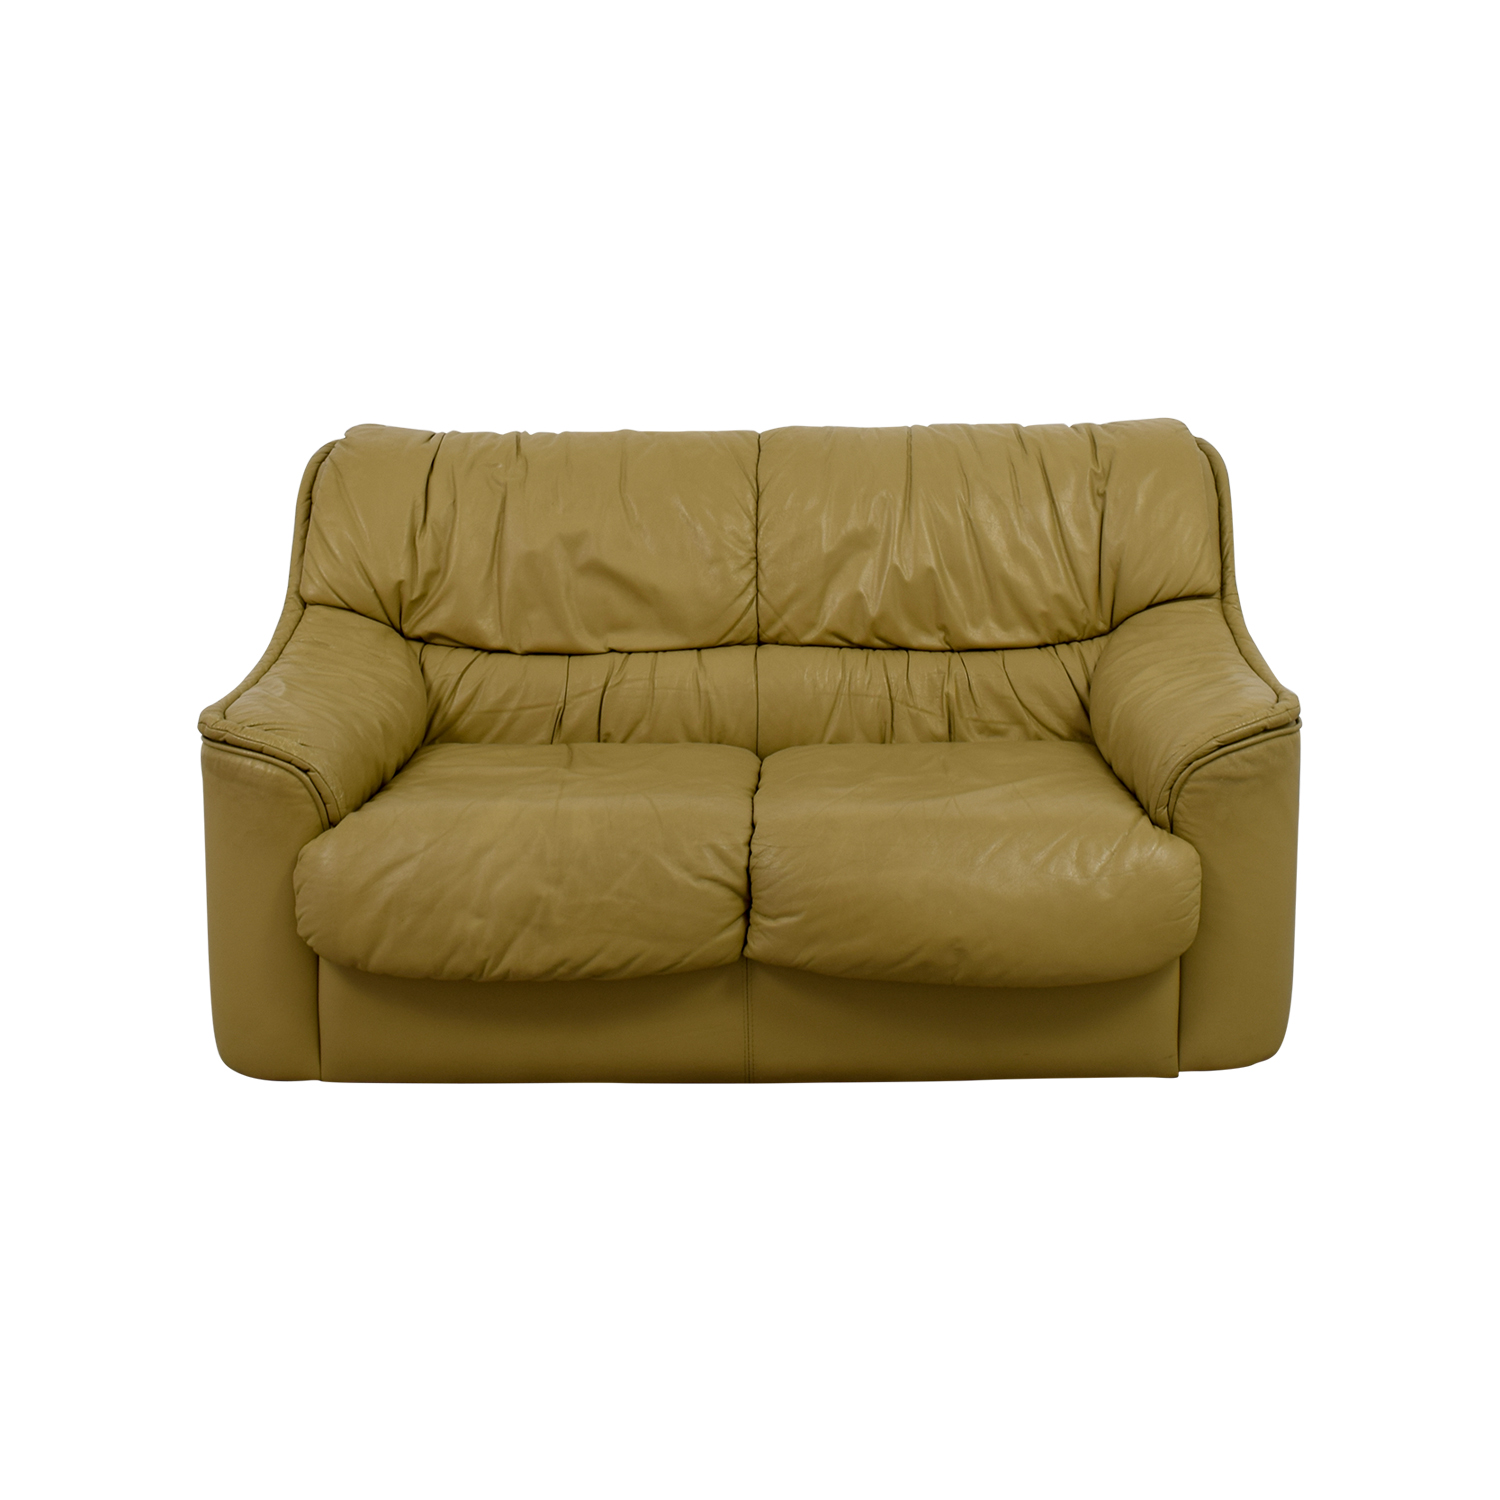 Tan Two-Cushion Love Seat